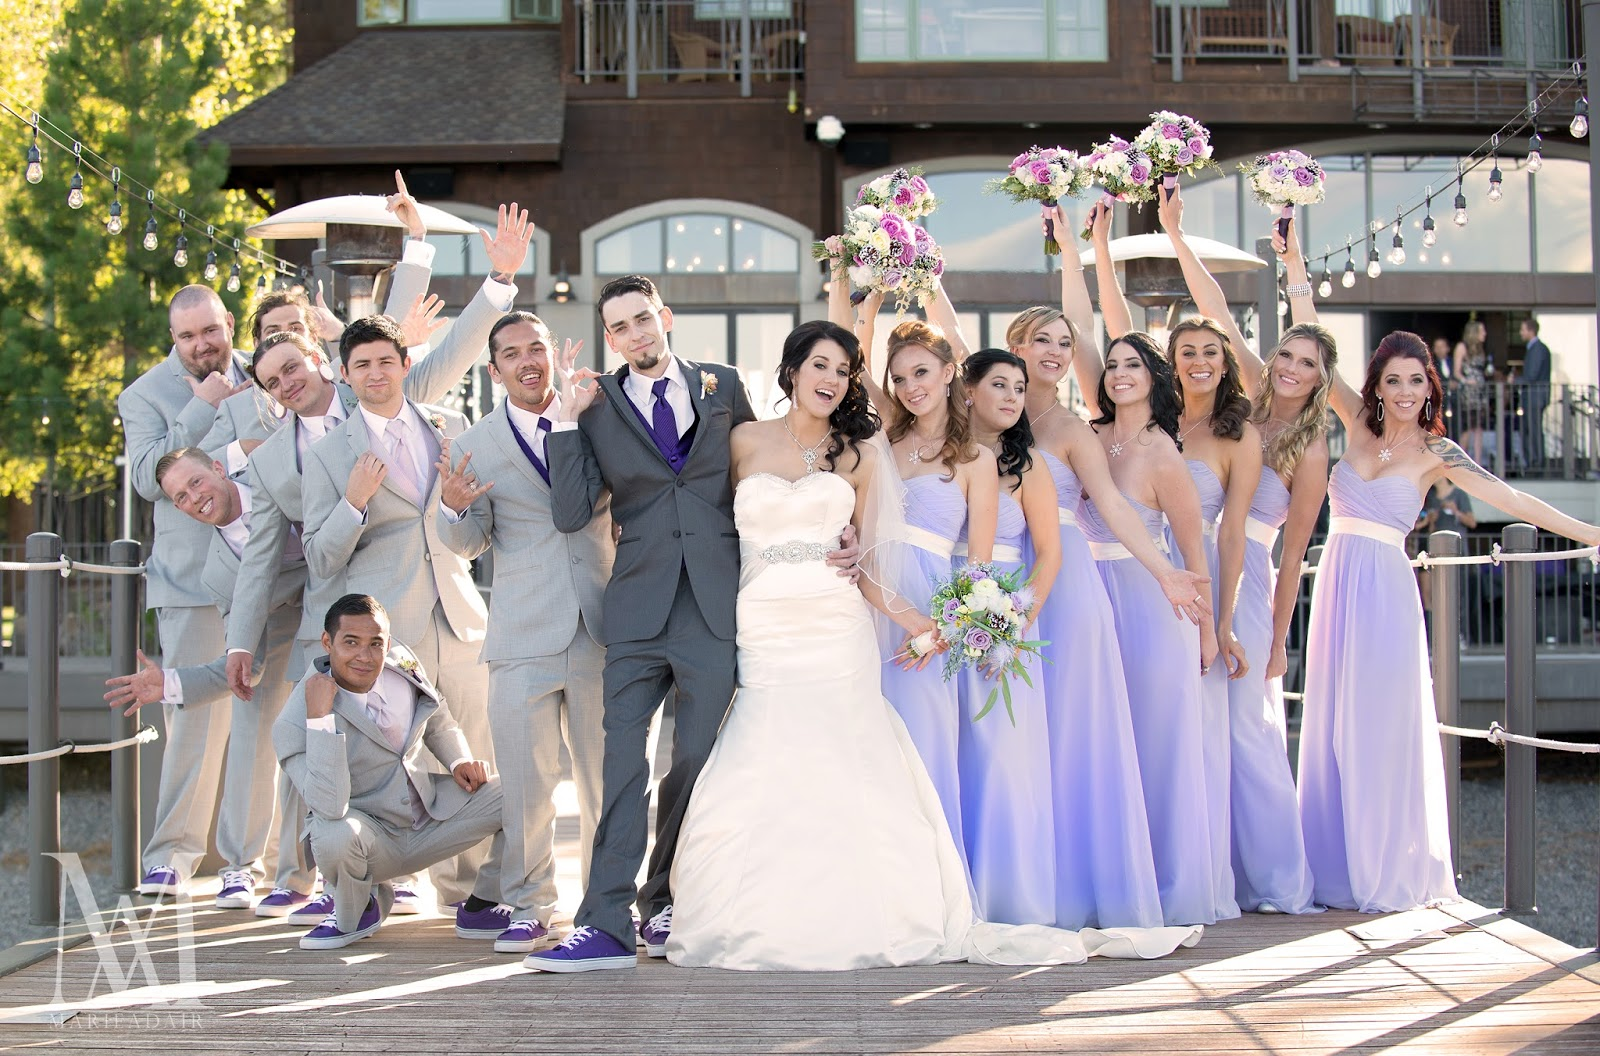 Take The Cake Events: Lovely Lavender & Silver Winter Lake